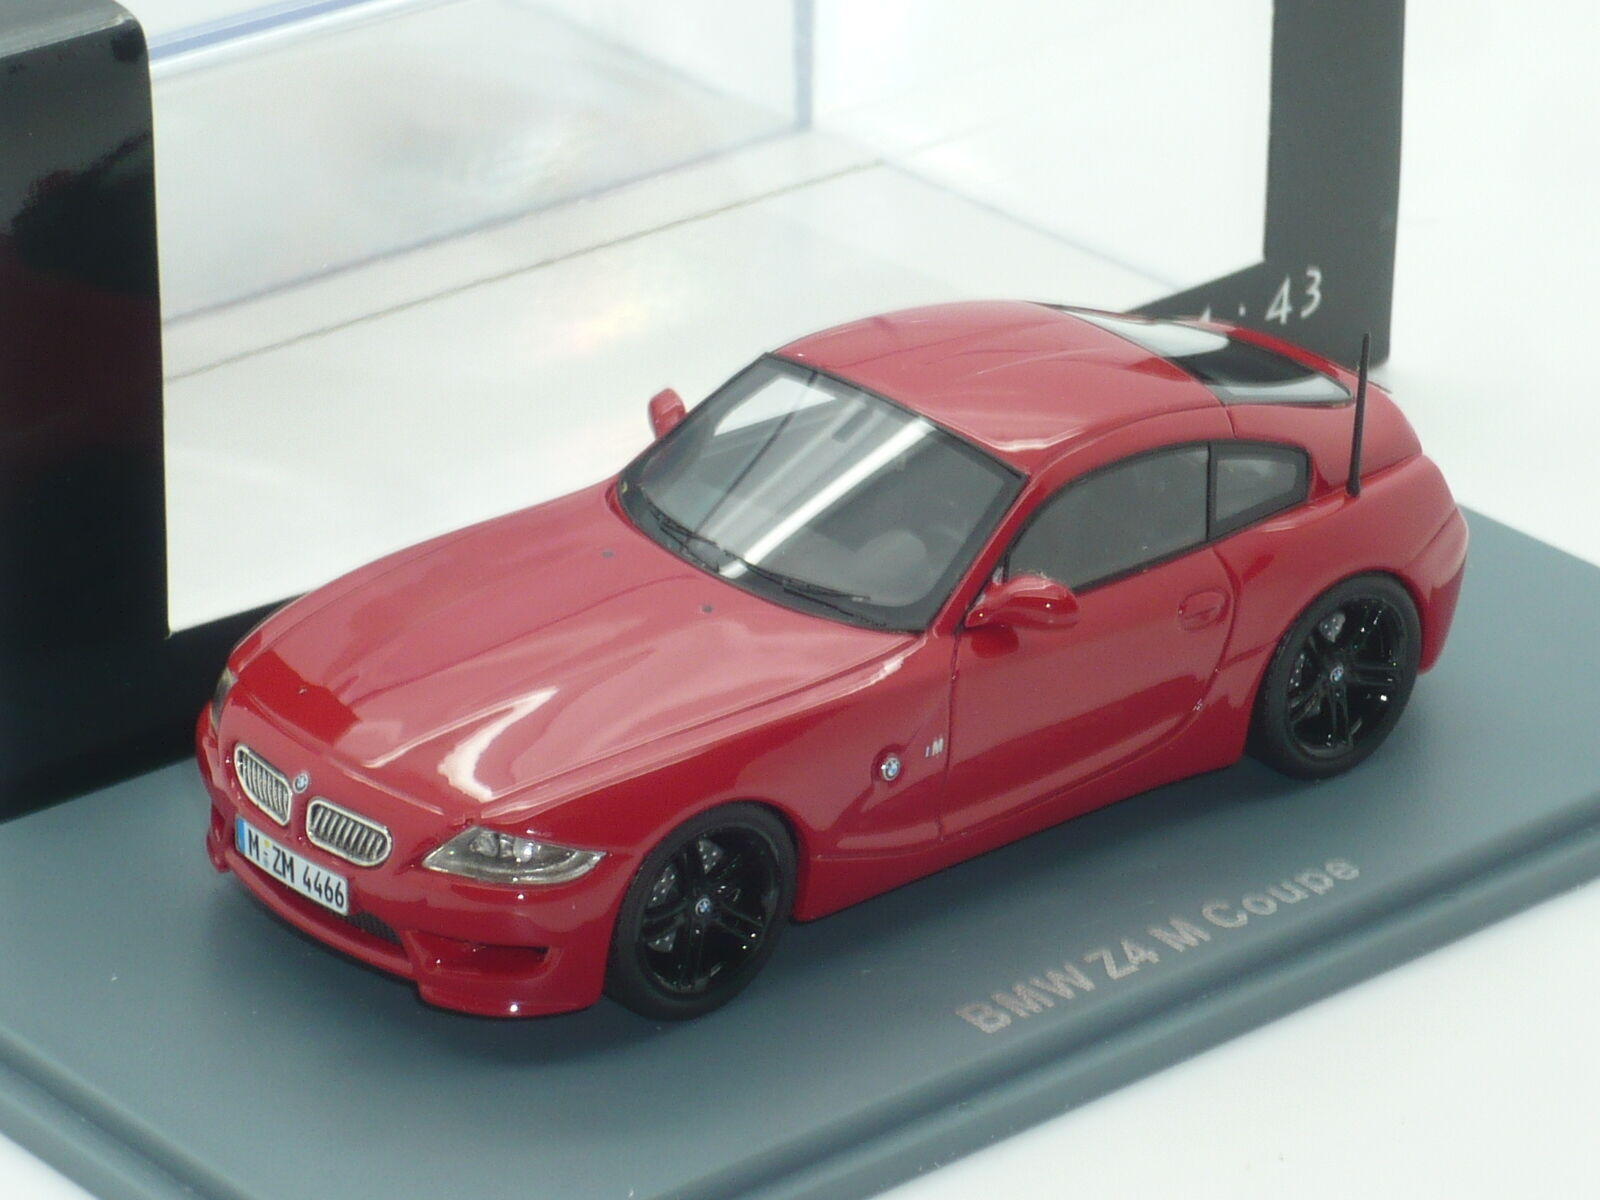 New 1 43 Neo Resin Handbuilt BMW Z4 M Coupe S54 Motorsport Straight 6 Imola Red